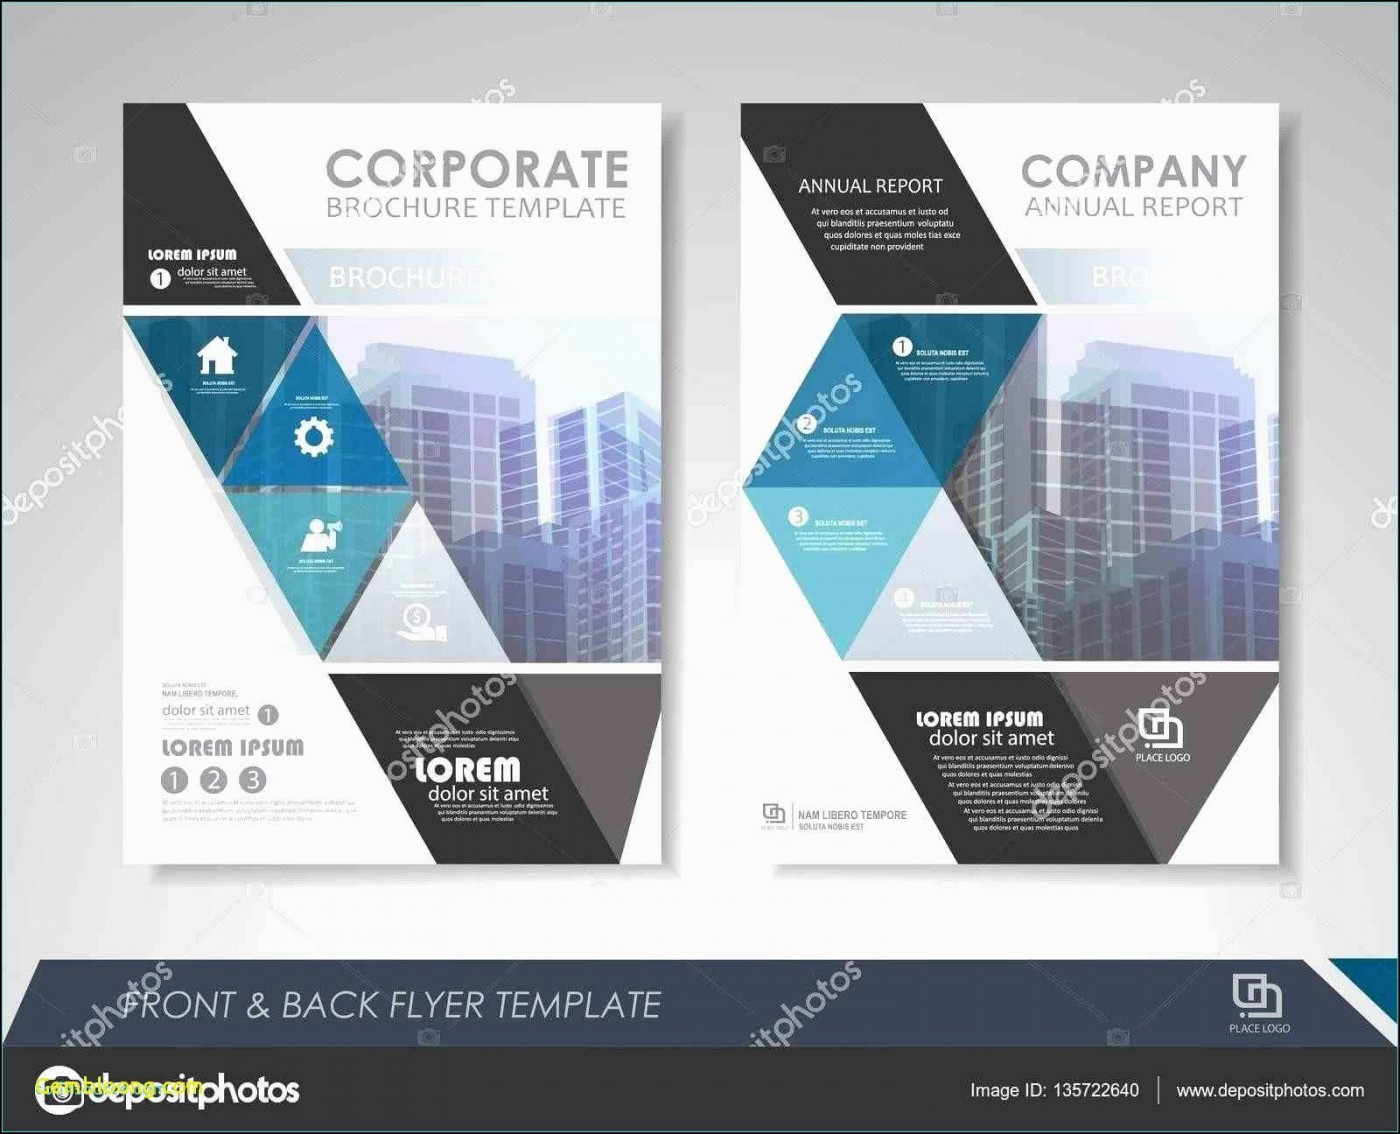 002 Awesome Photoshop Brochure Design Template Free Download High Def 1400